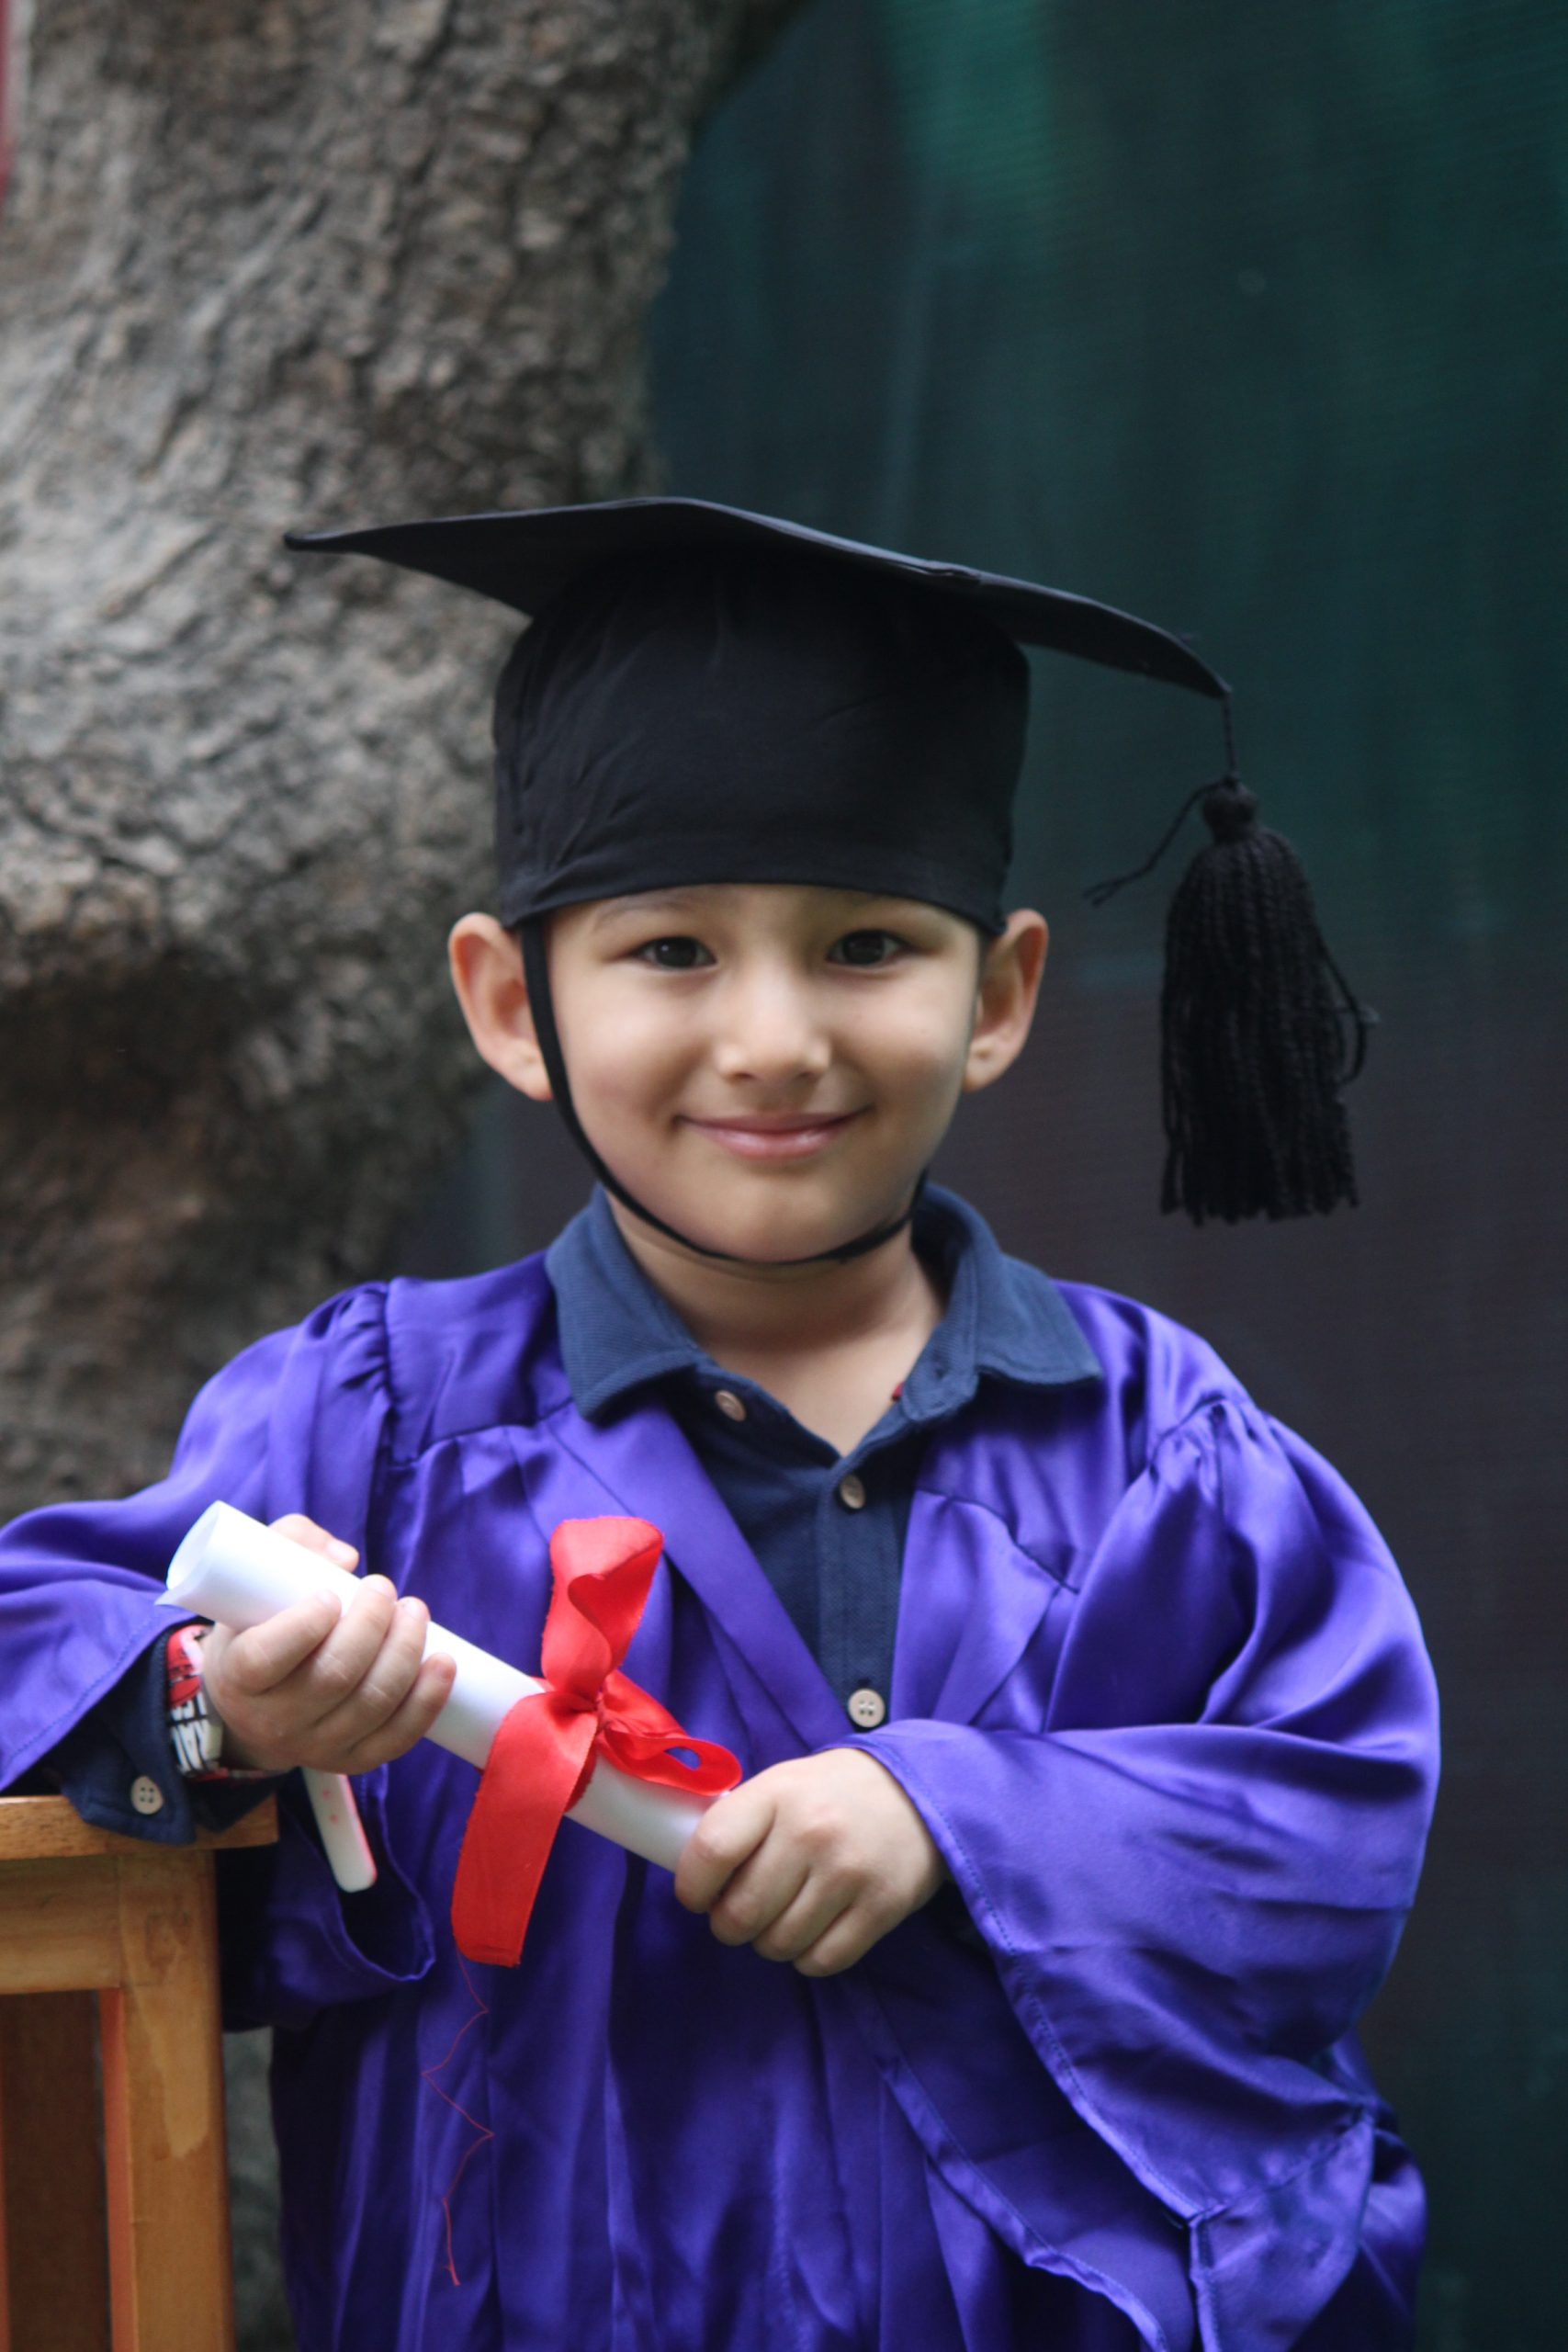 A kid in graduation gown